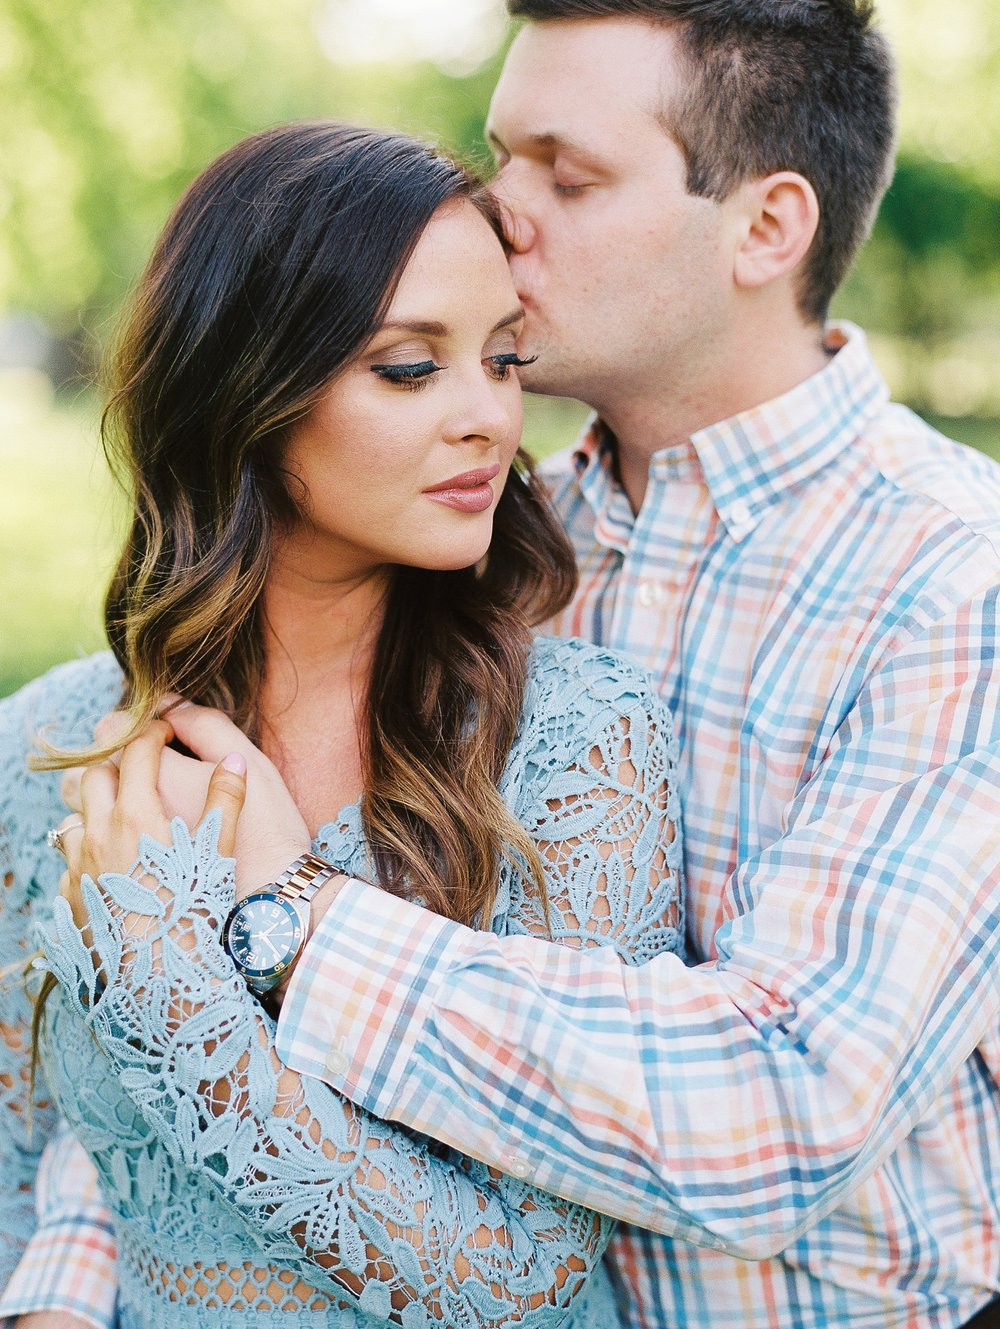 Fayetteville Arkansas Engagement Session Photographer_0684.jpg